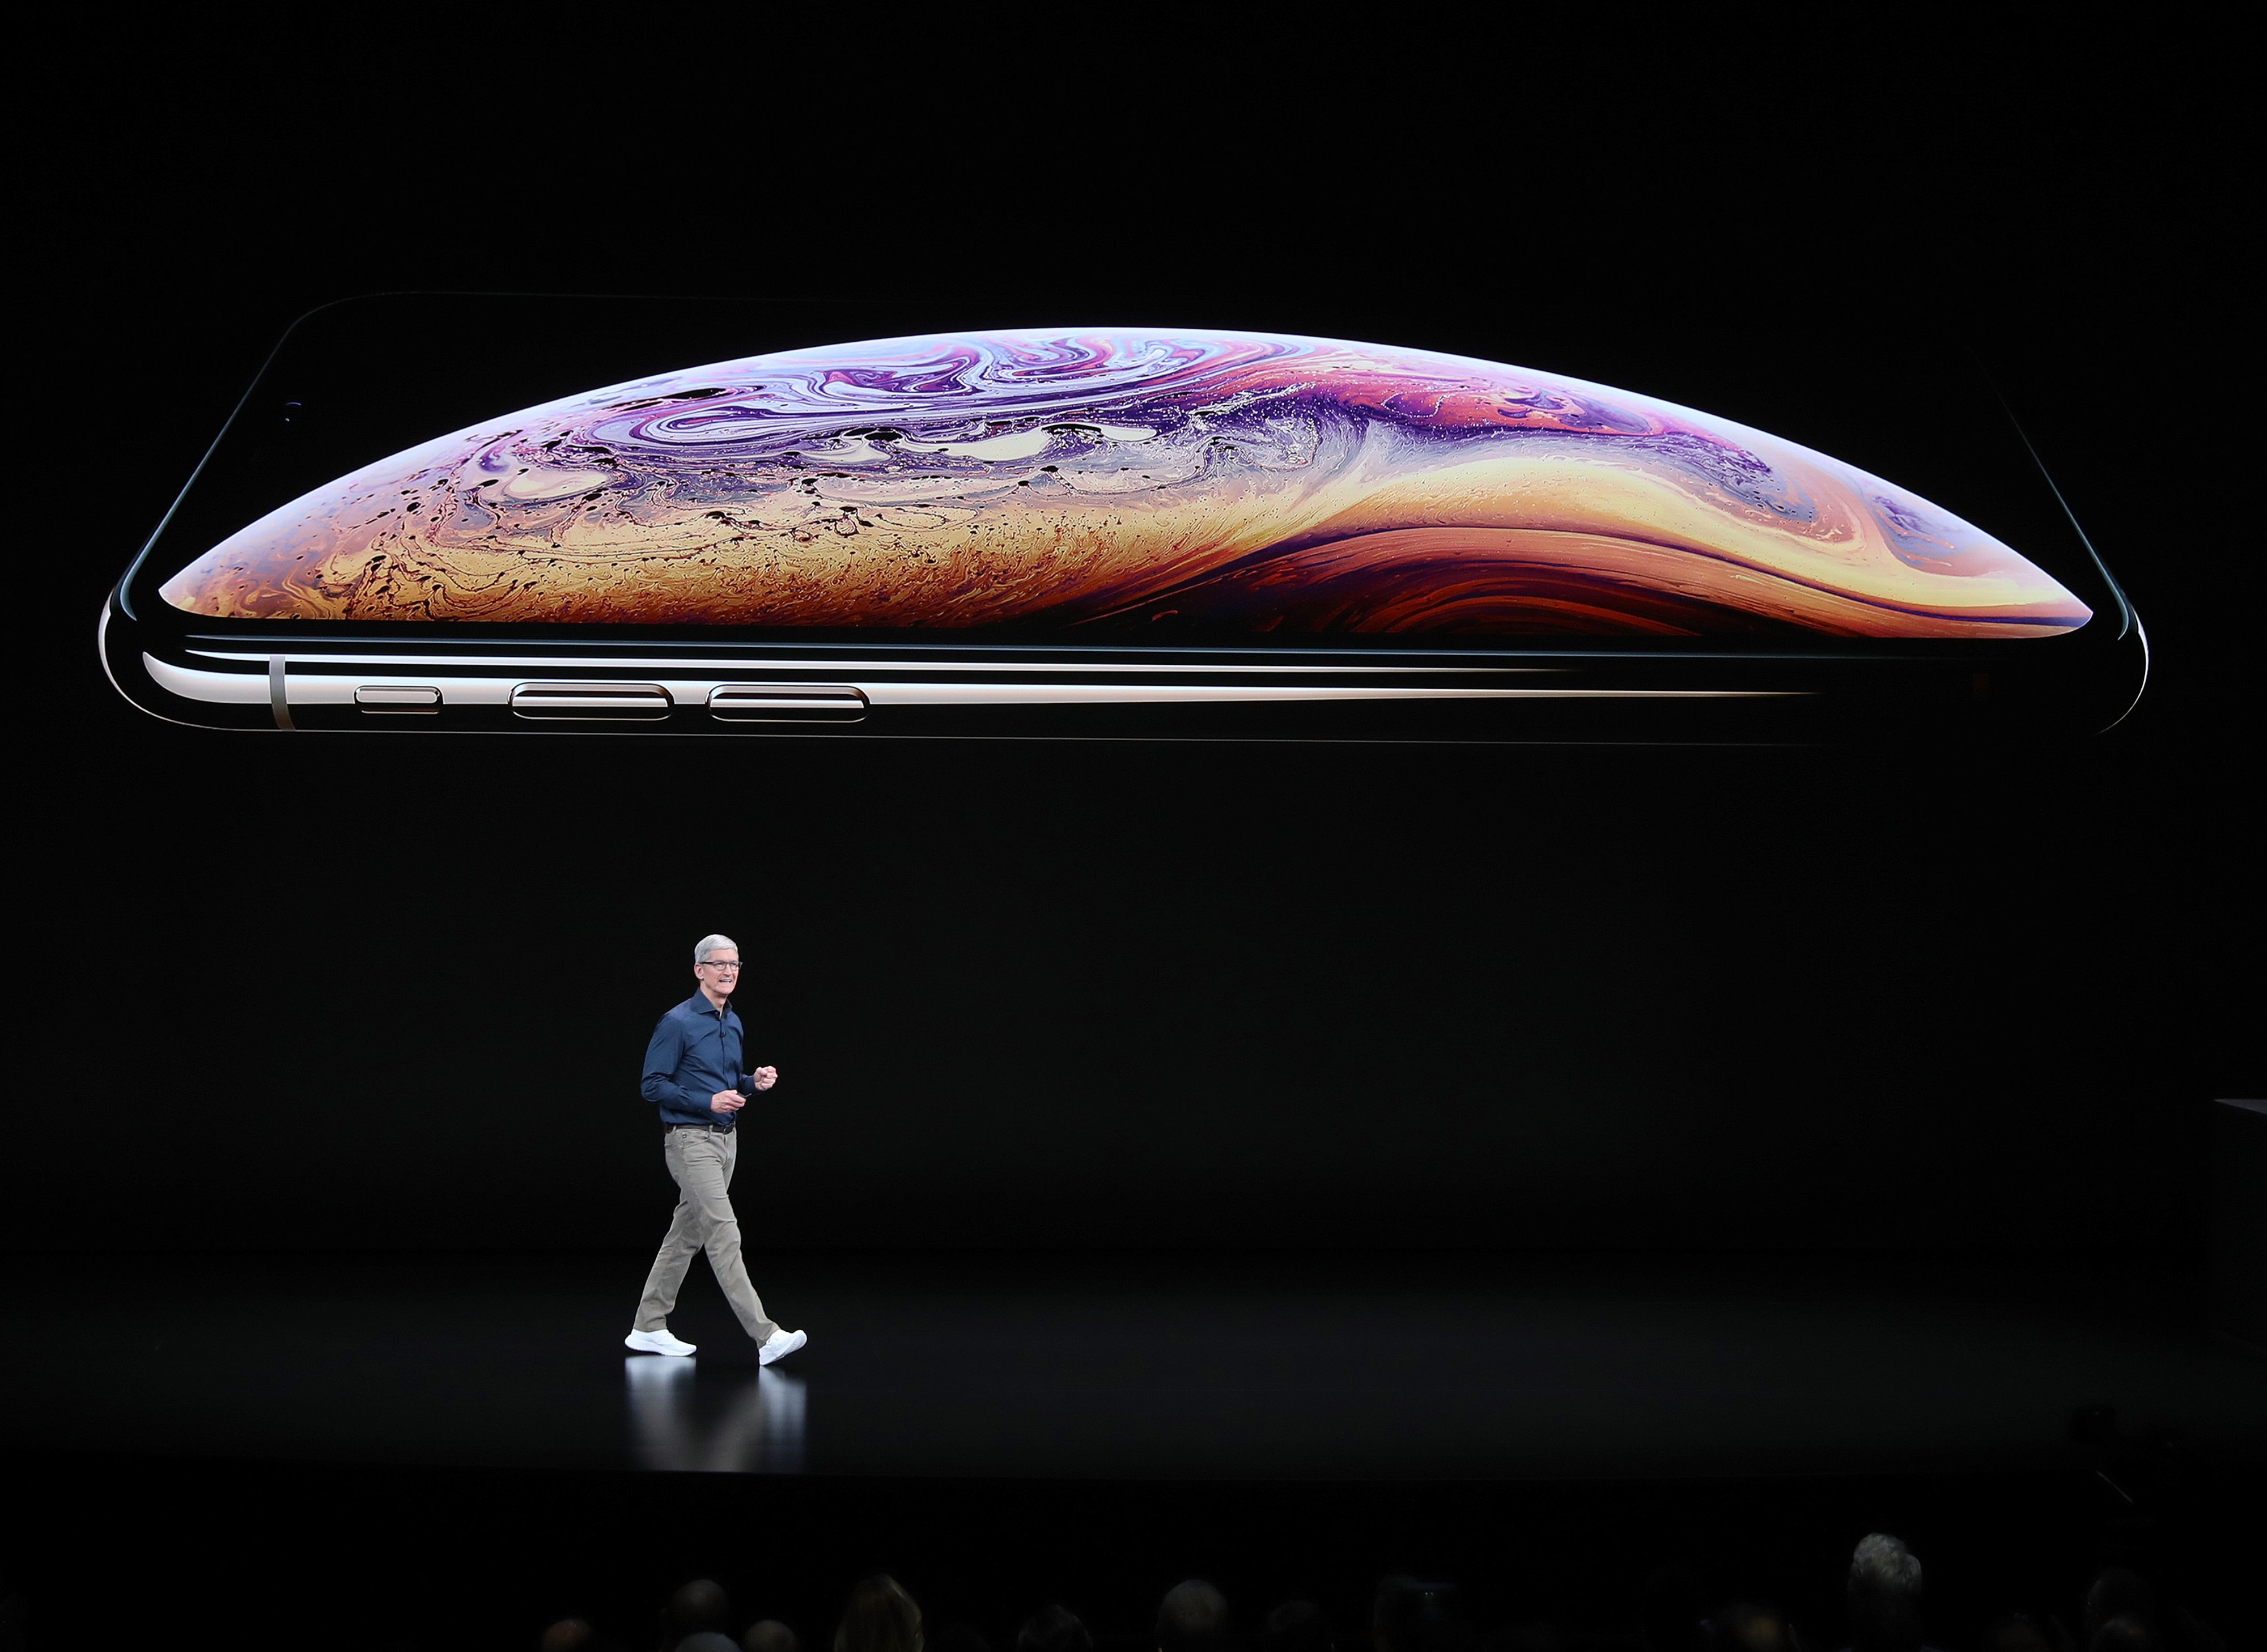 Tim Cook, chief executive officer of Apple,  speaks during an Apple event  at the Steve Jobs Theater at Apple Park on September 12, 2018 in Cupertino, California. Apple is expected to announce new iPhones with larger screens as well as other product upgrades.